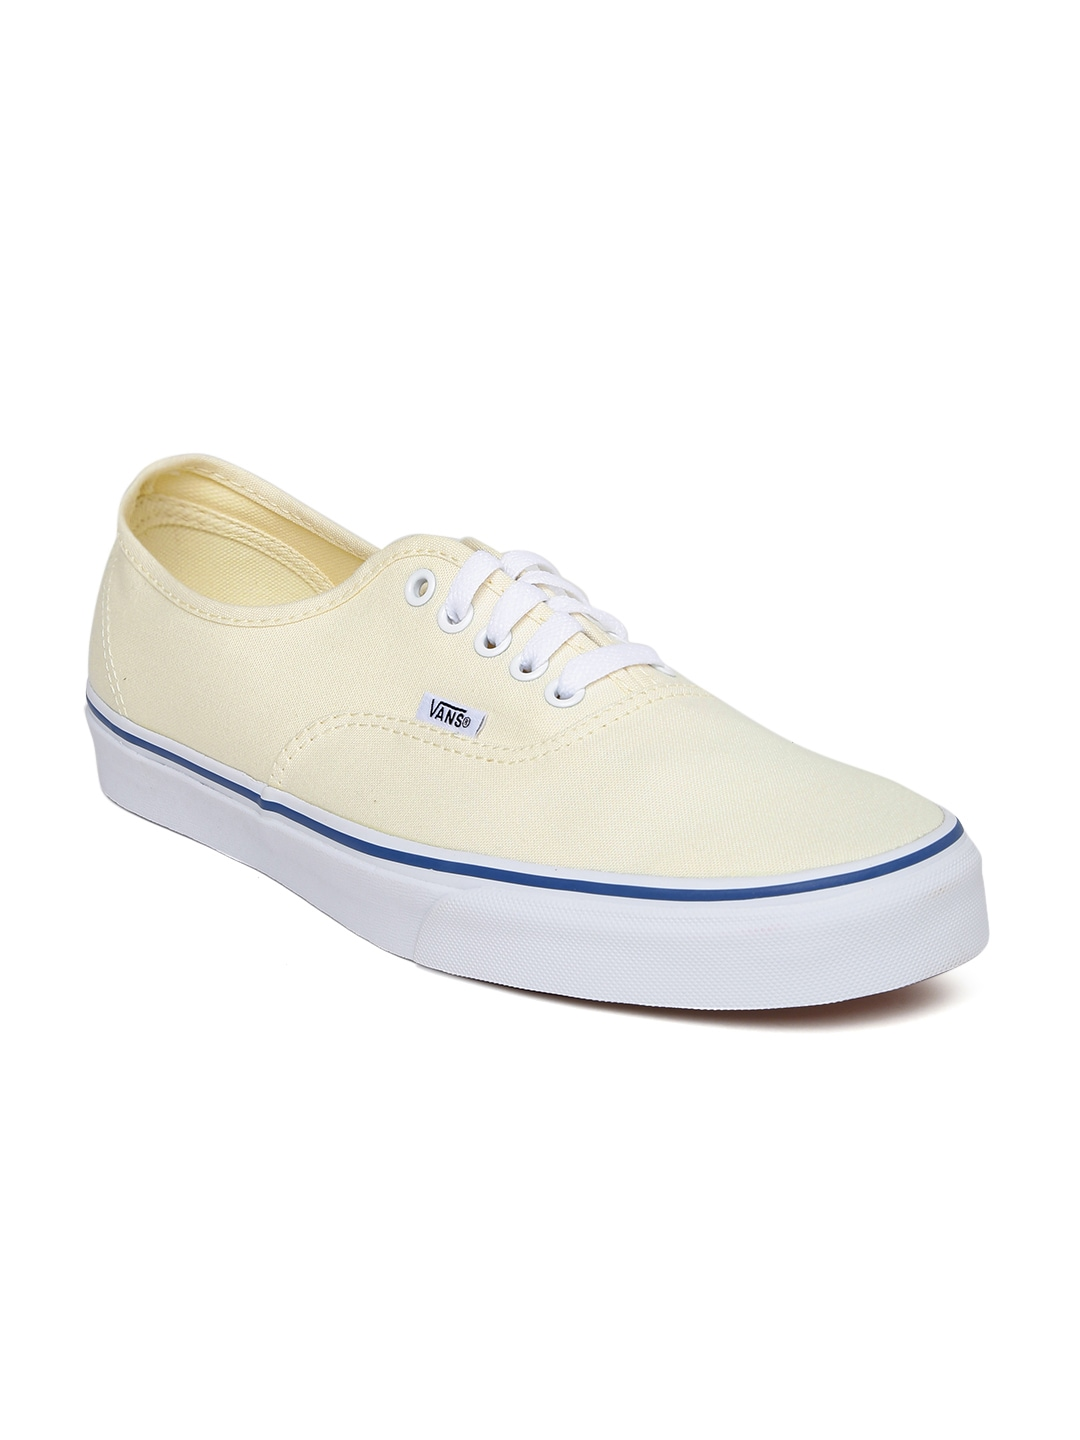 b32d1be29ae3b8 Vans Authentic - Buy Vans Authentic online in India